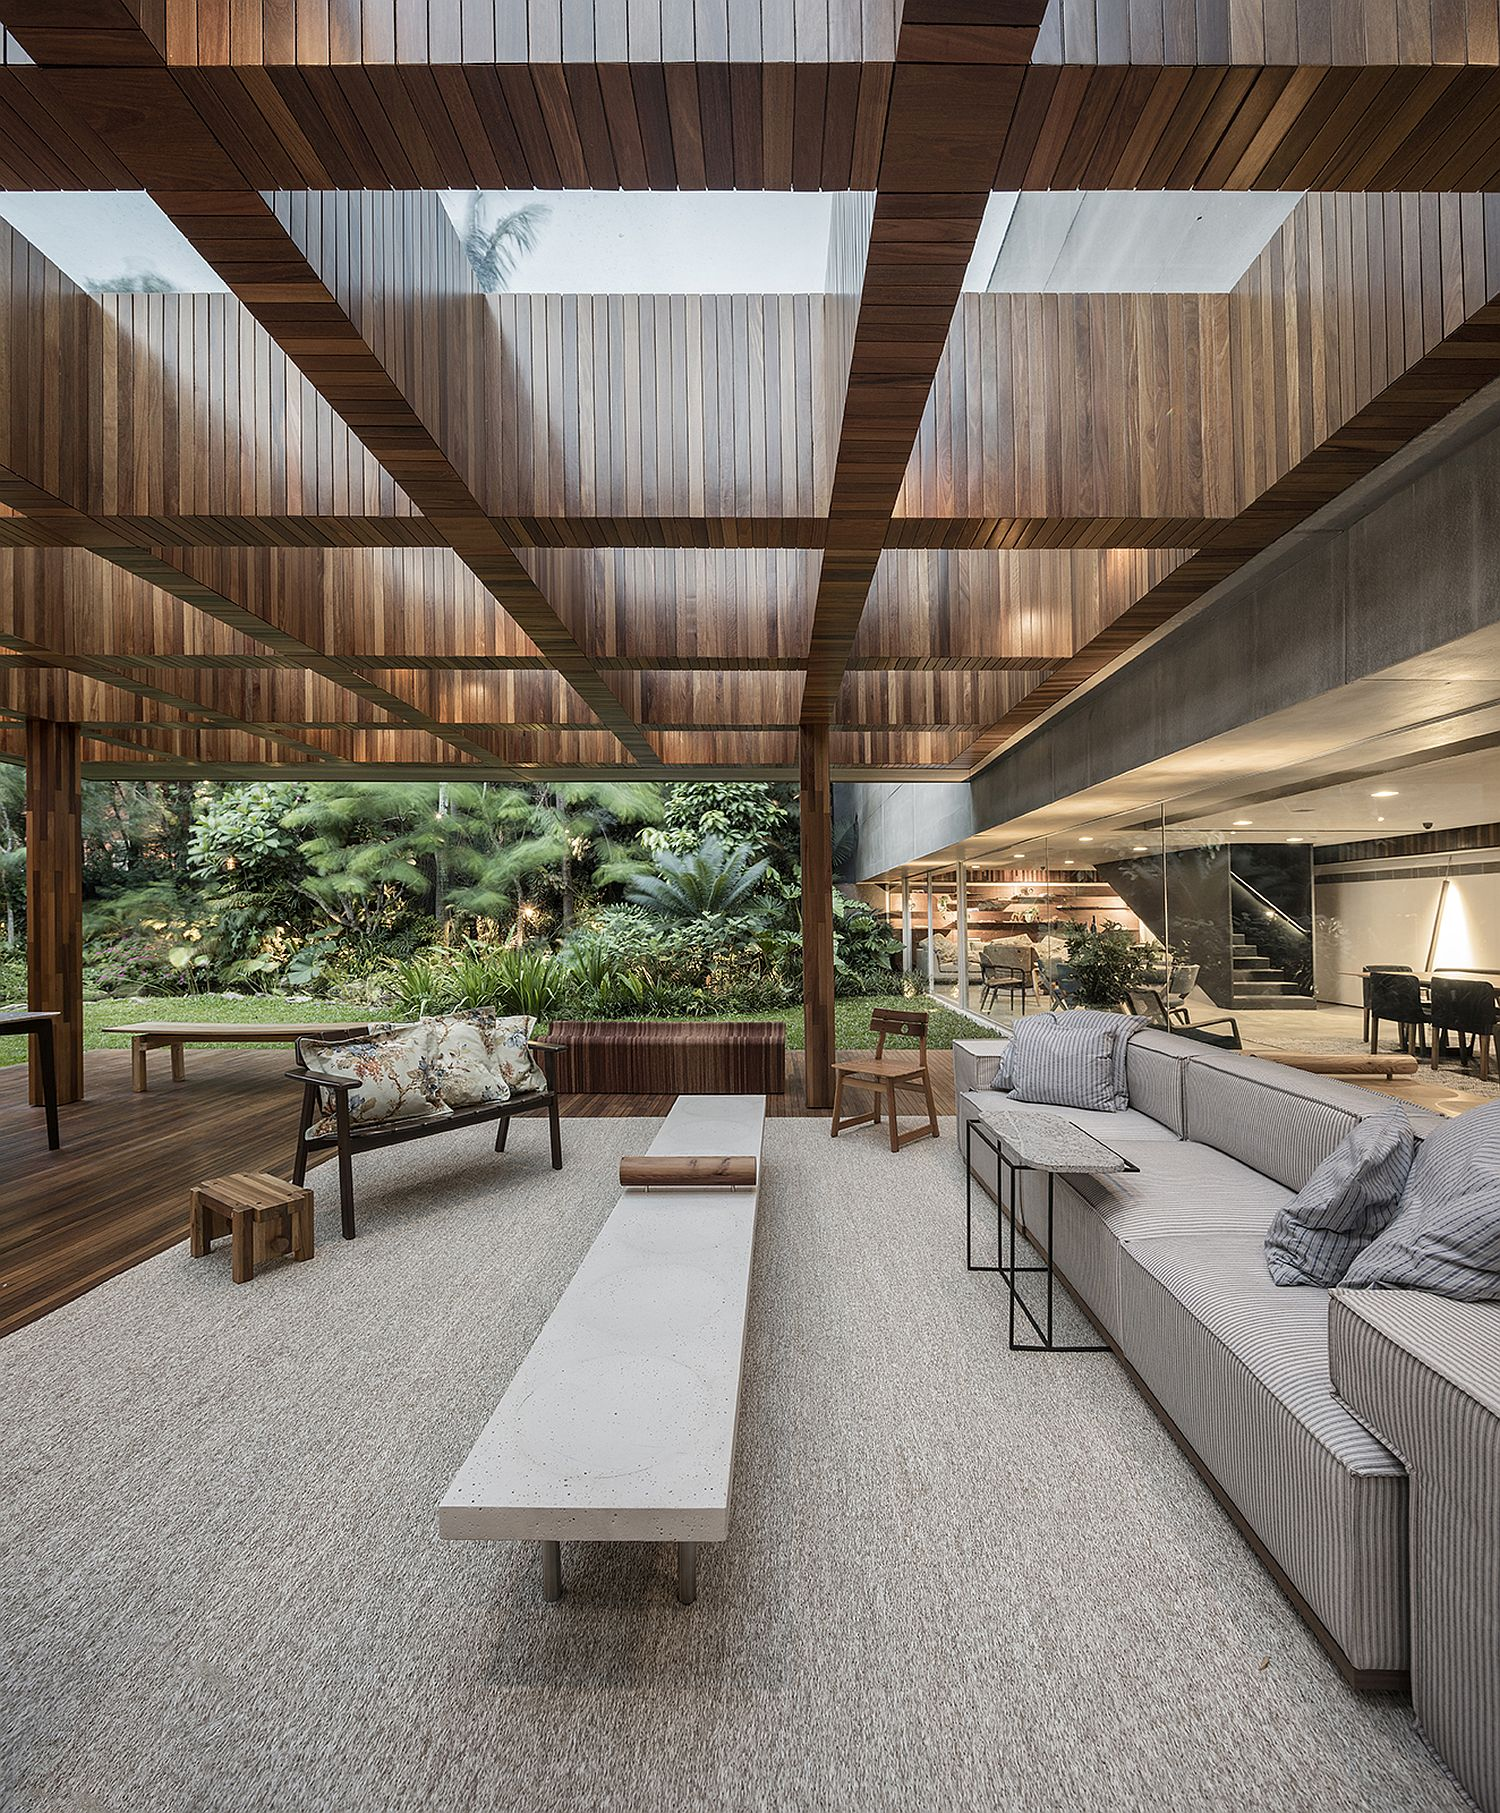 Open concept indoor outdoor living area that allows for proper ventilation